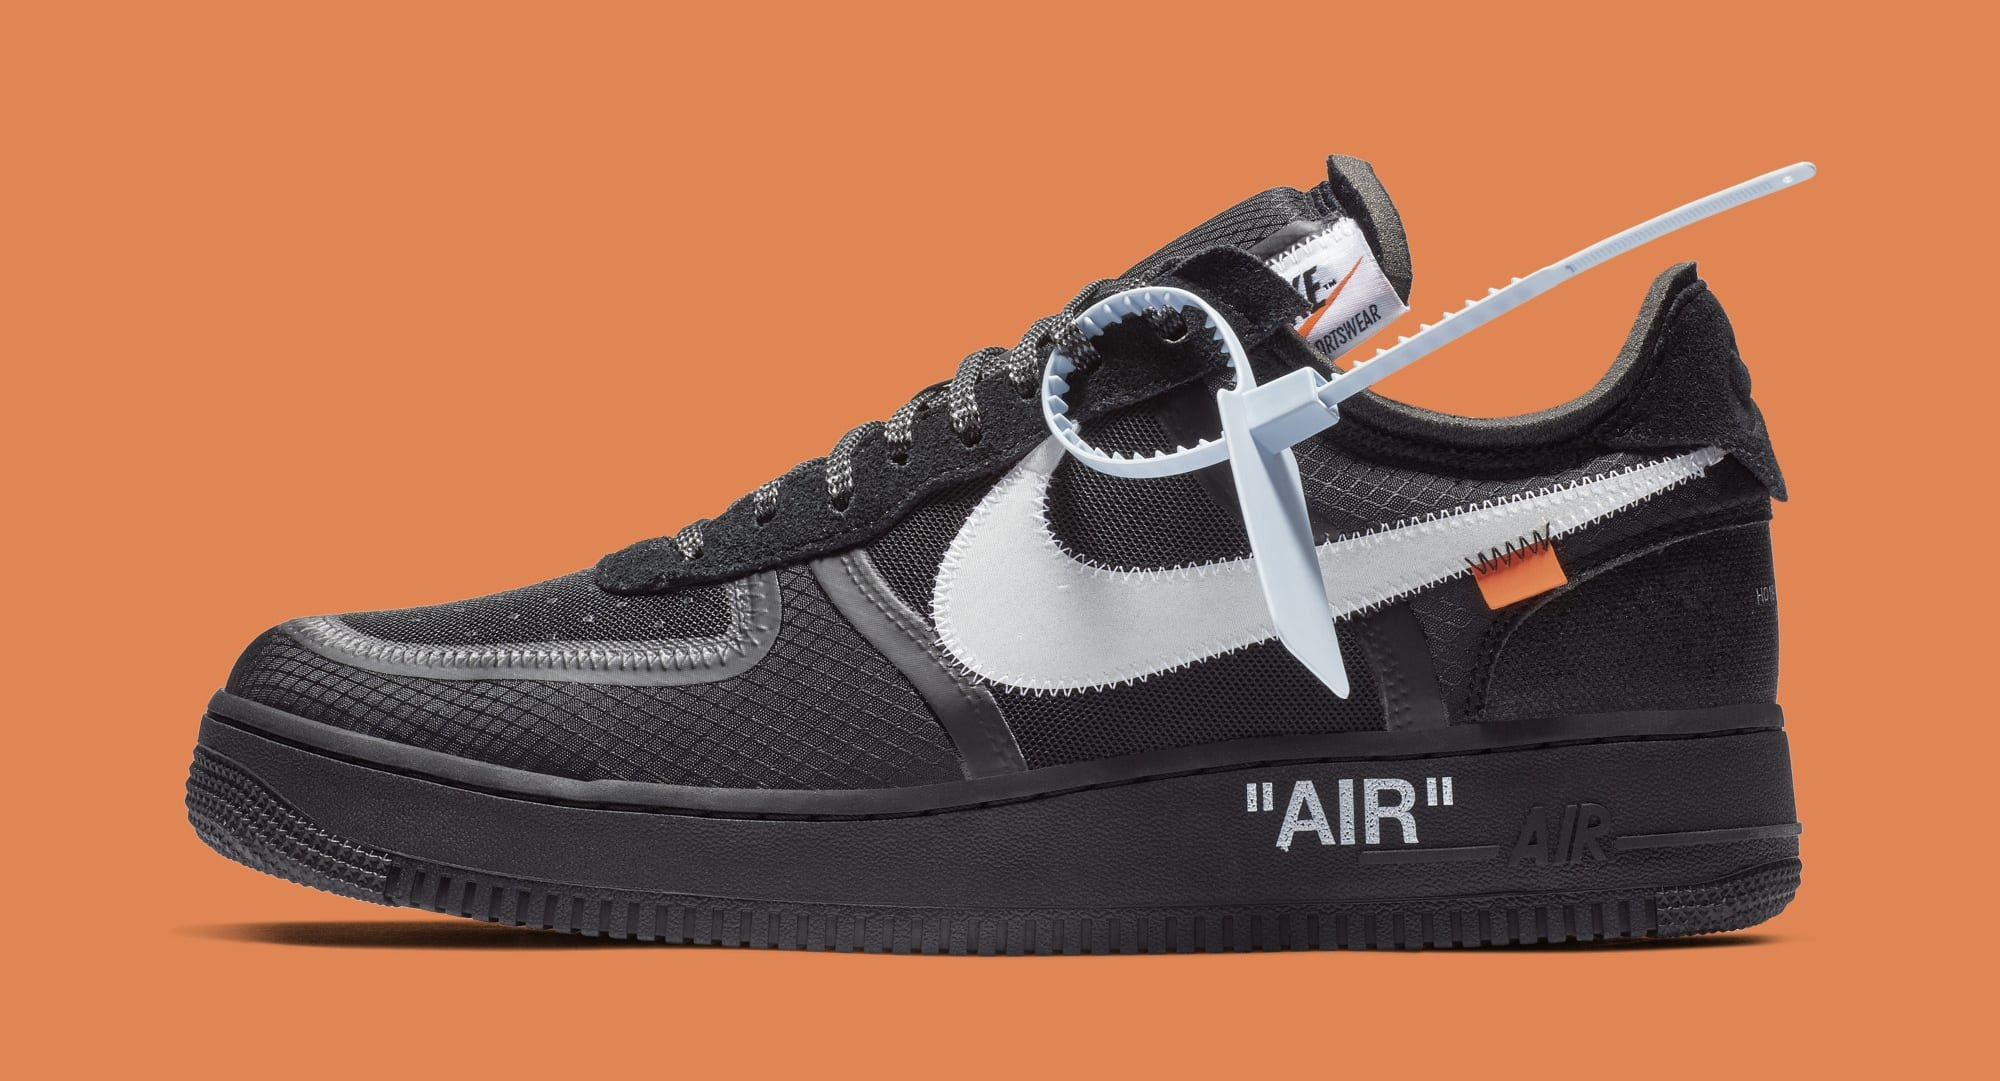 Off-White x Nike Air Force 1 Low 'Black/White' AO4606-001 (Lateral)